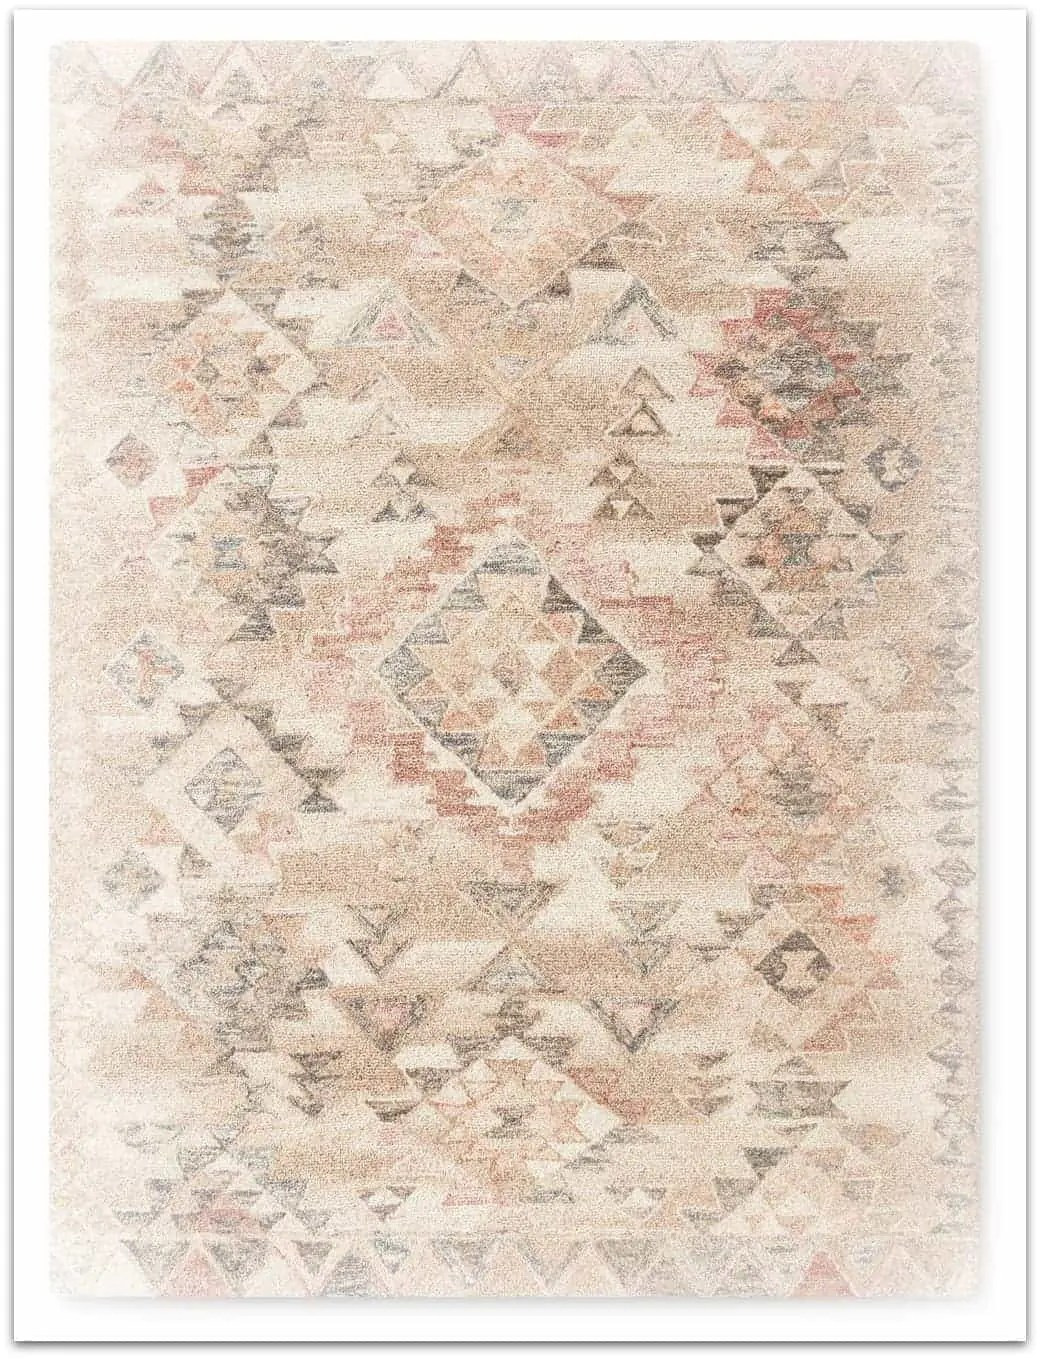 Rustic Farmhouse Area Rugs Farmhouse Style Living Room Decorating On A Budget With